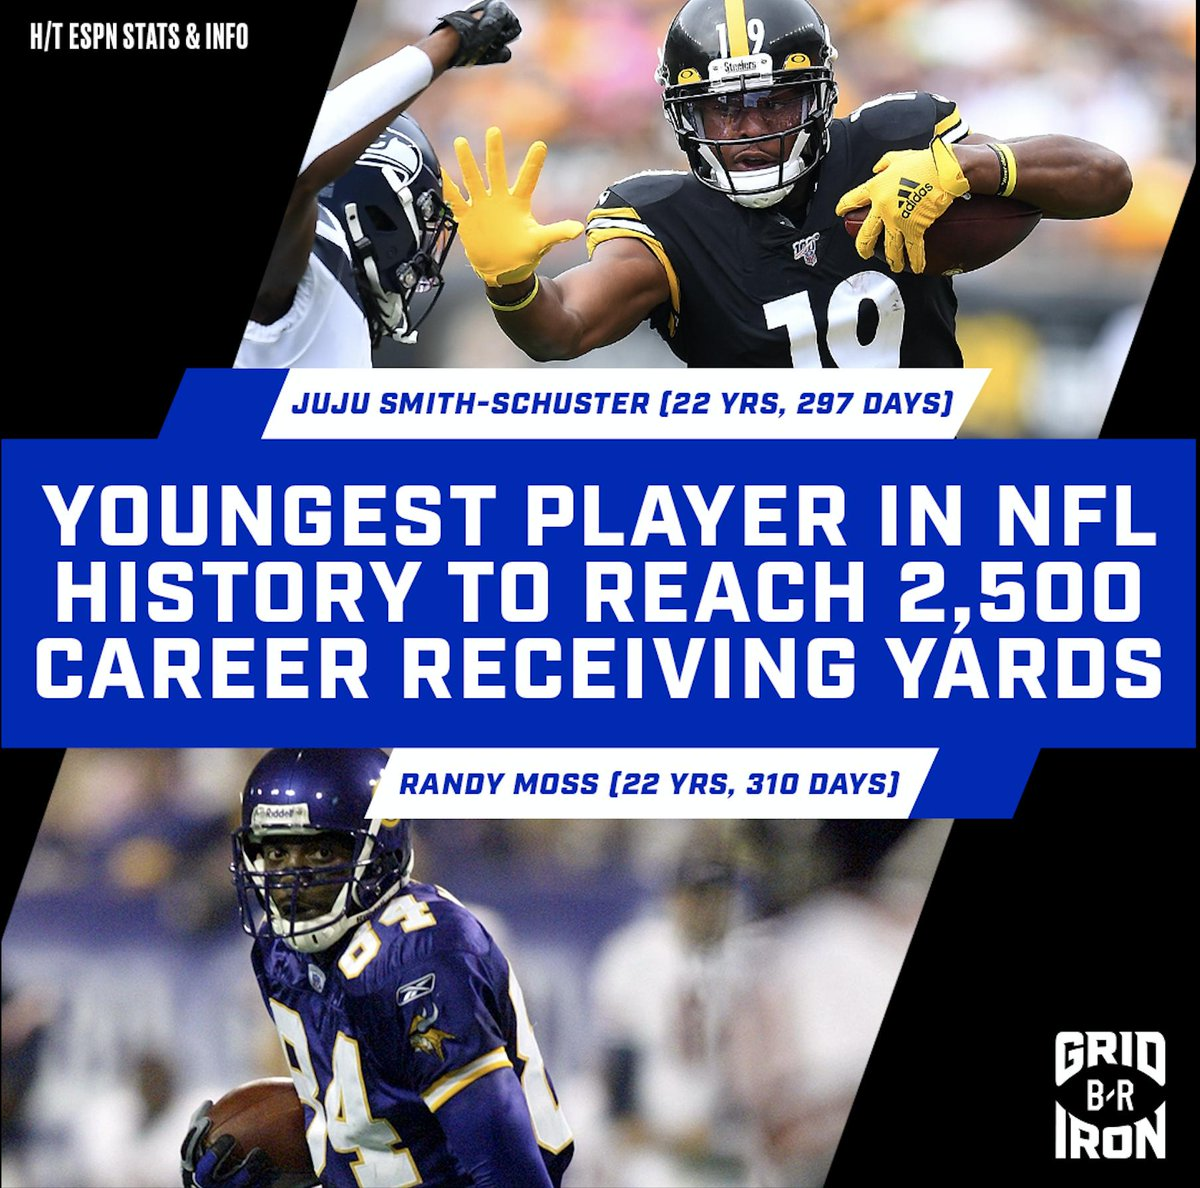 .@TeamJuJu making history ✊